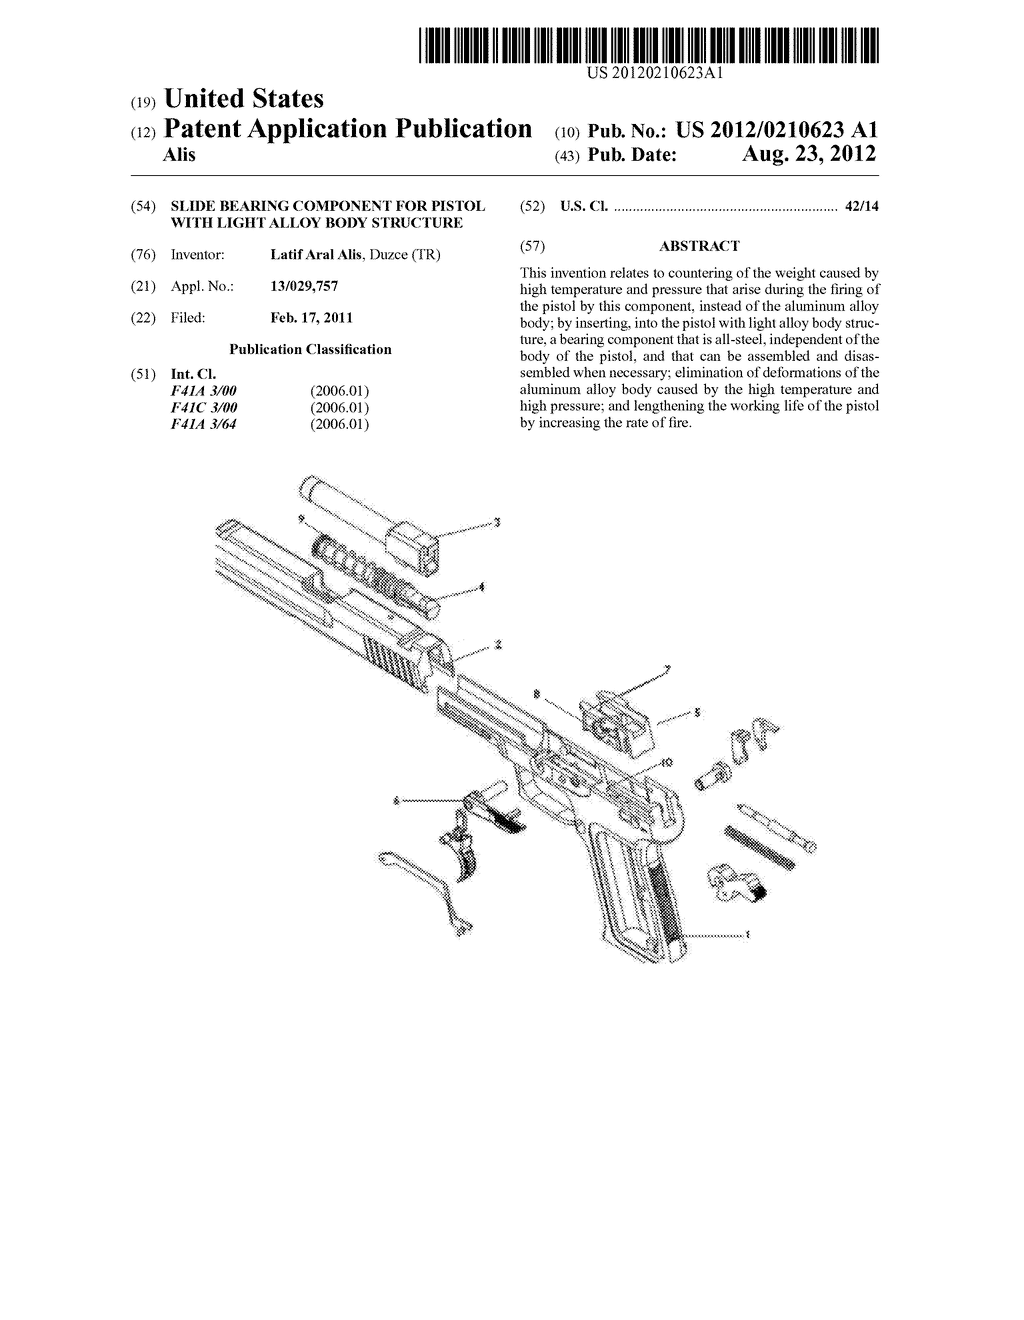 Slide Bearing Component for Pistol with Light Alloy Body